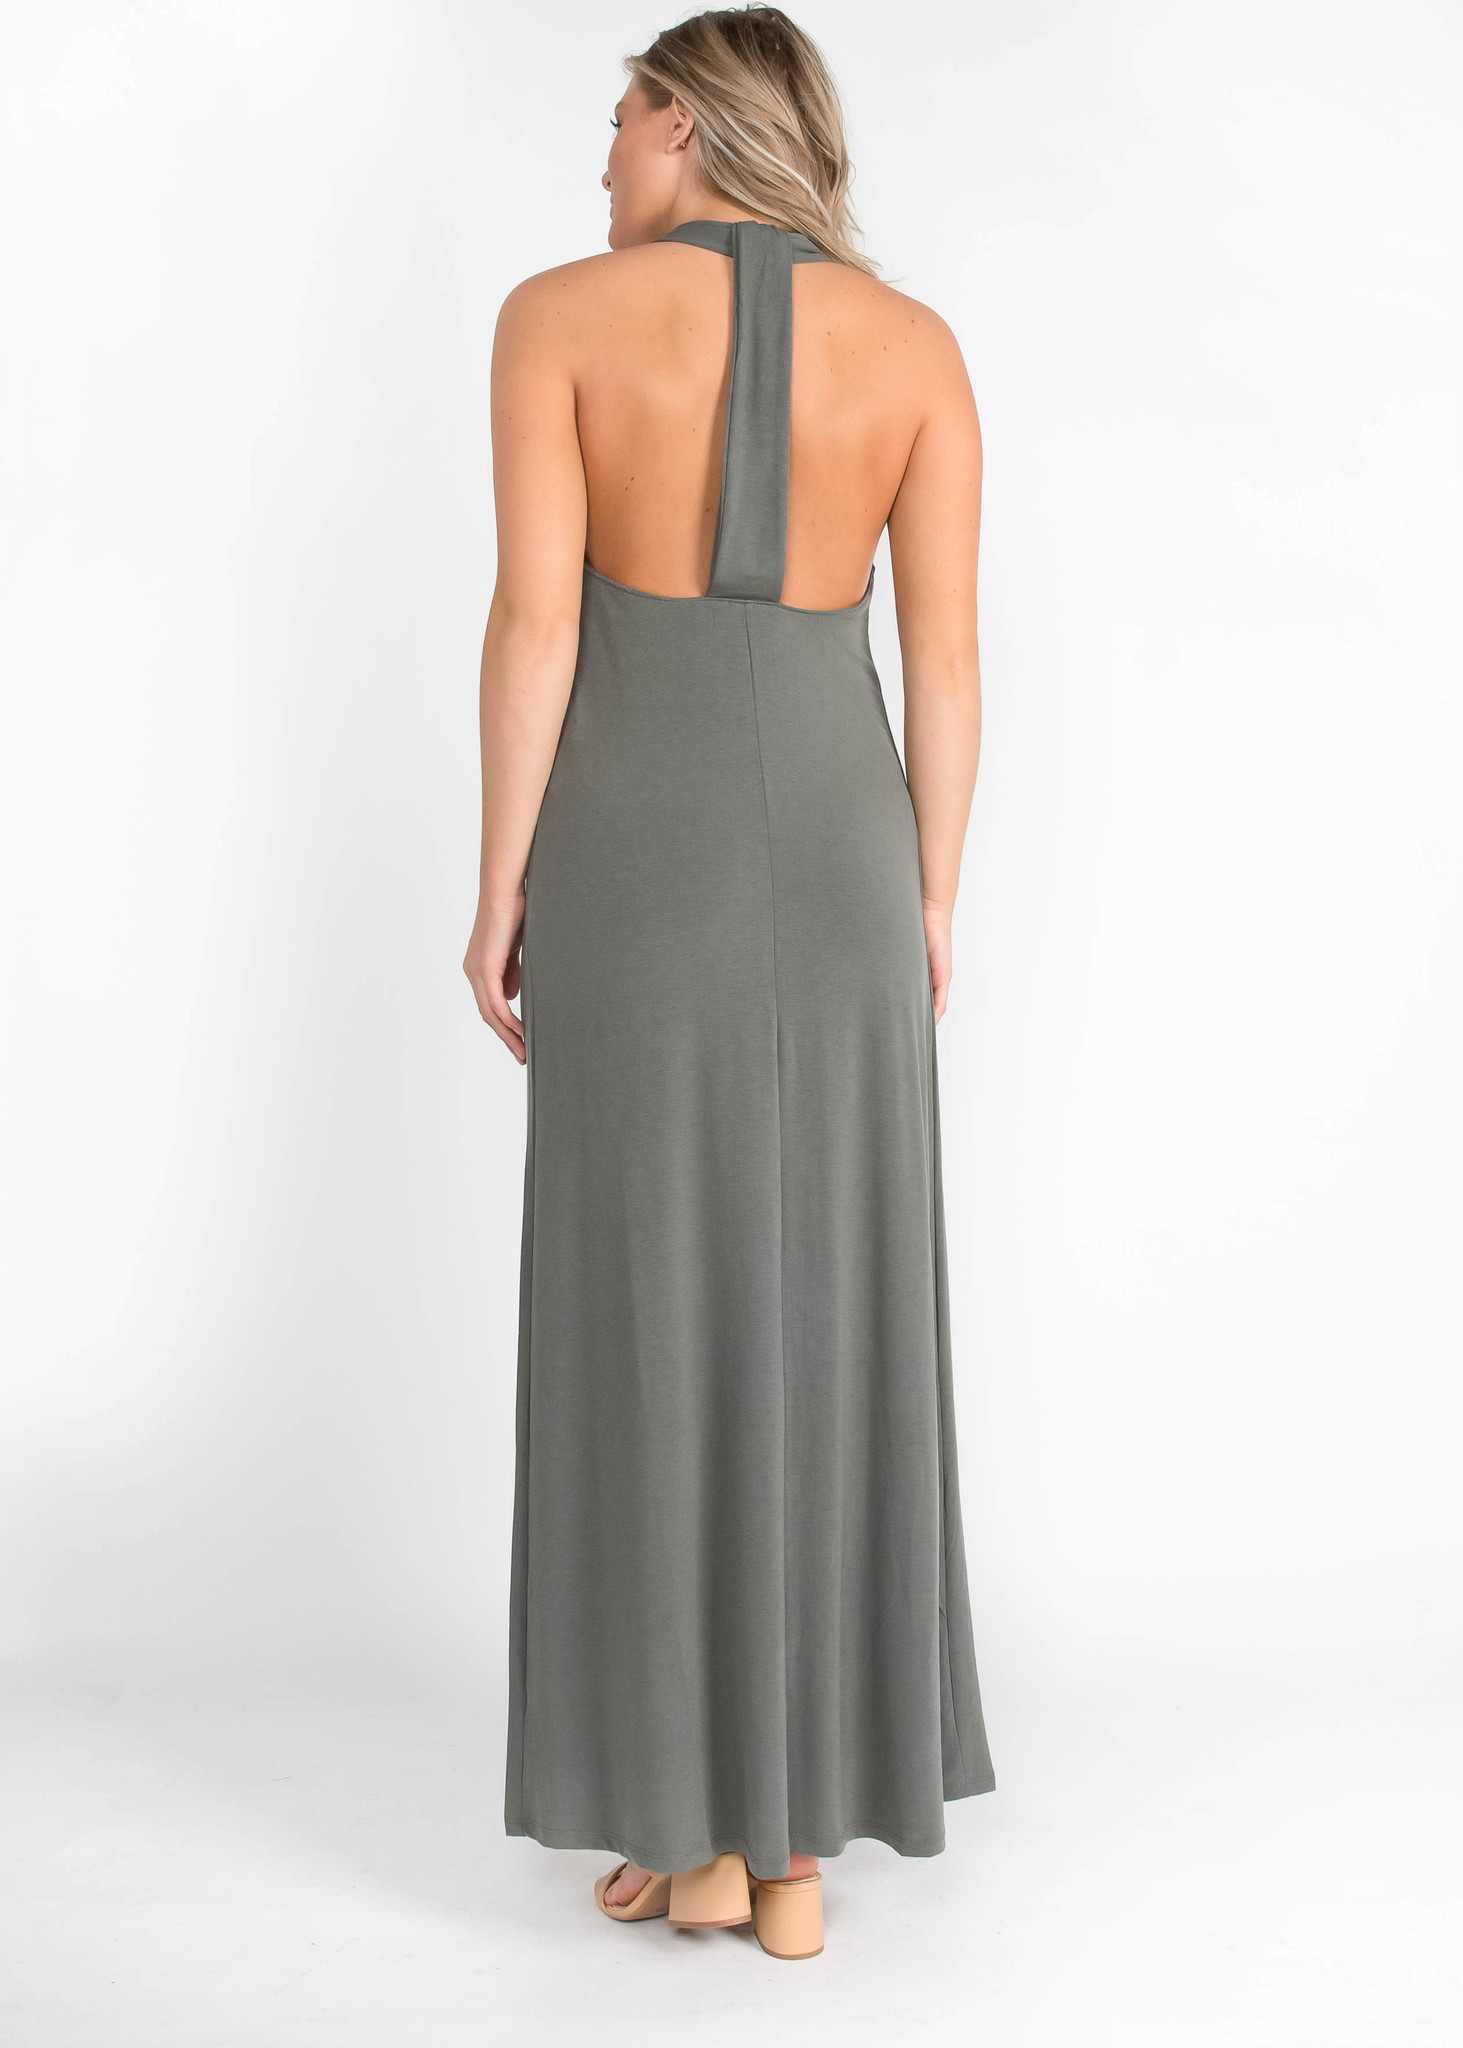 LOVELY AFTERNOON MAXI DRESS